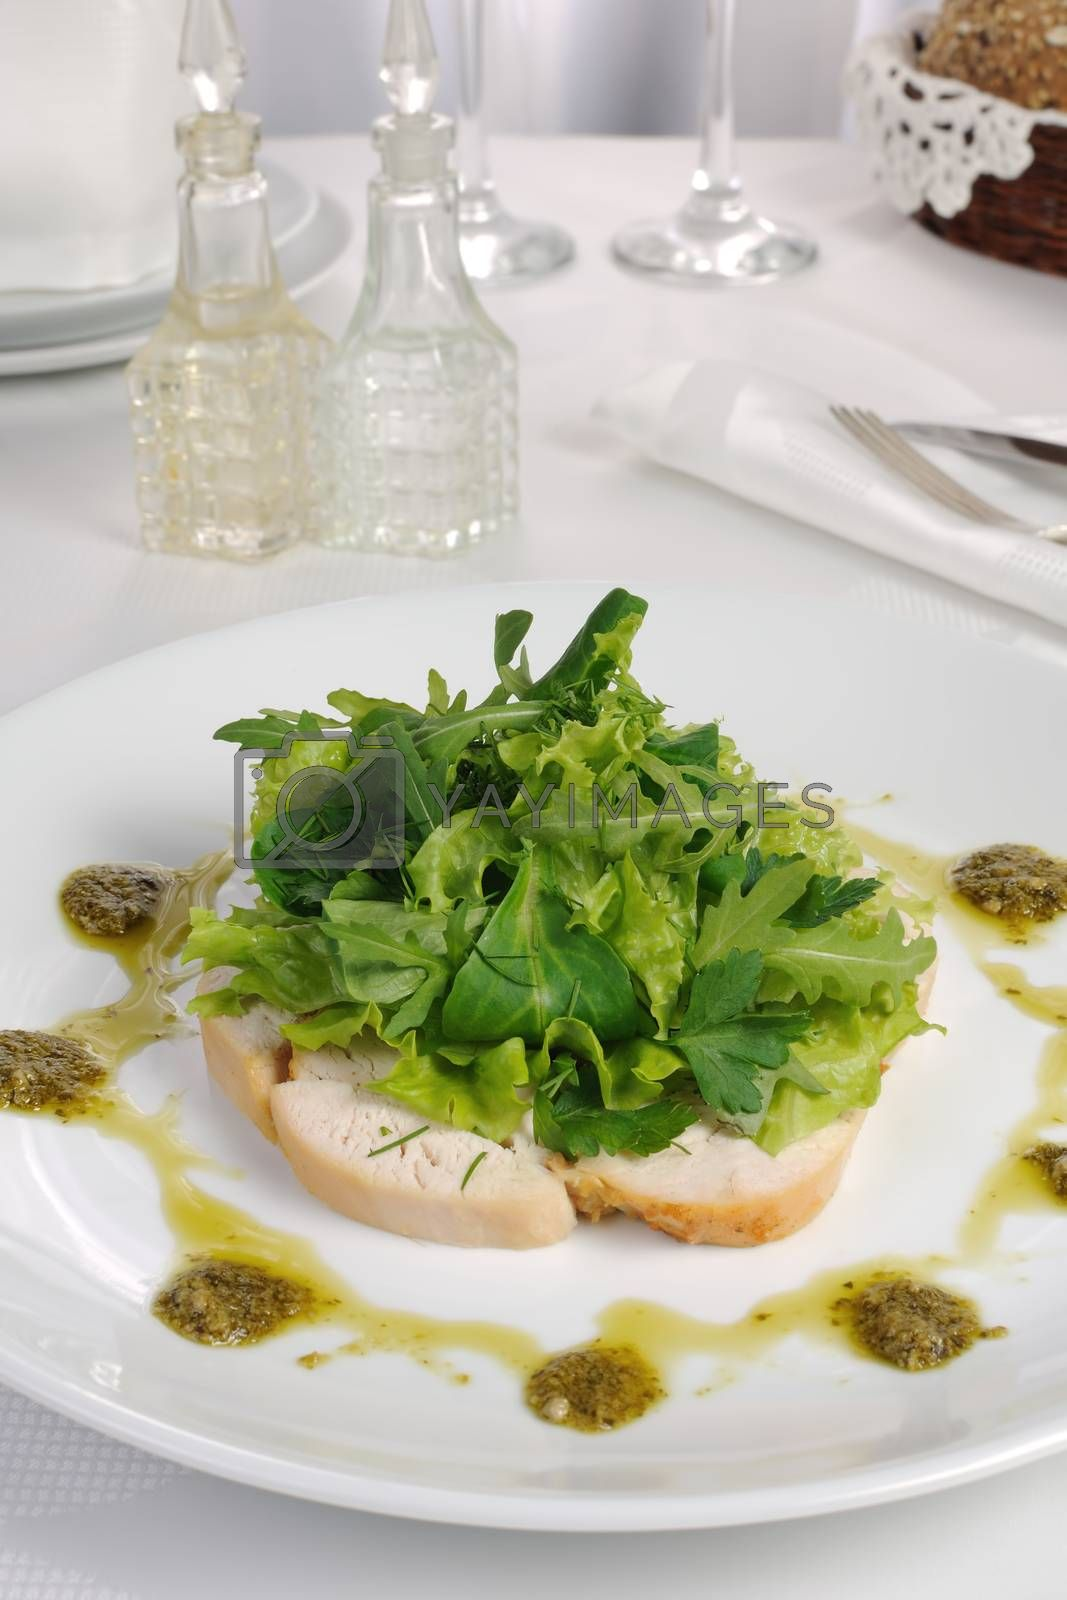 Slices of roasted chicken with lettuce by Apolonia